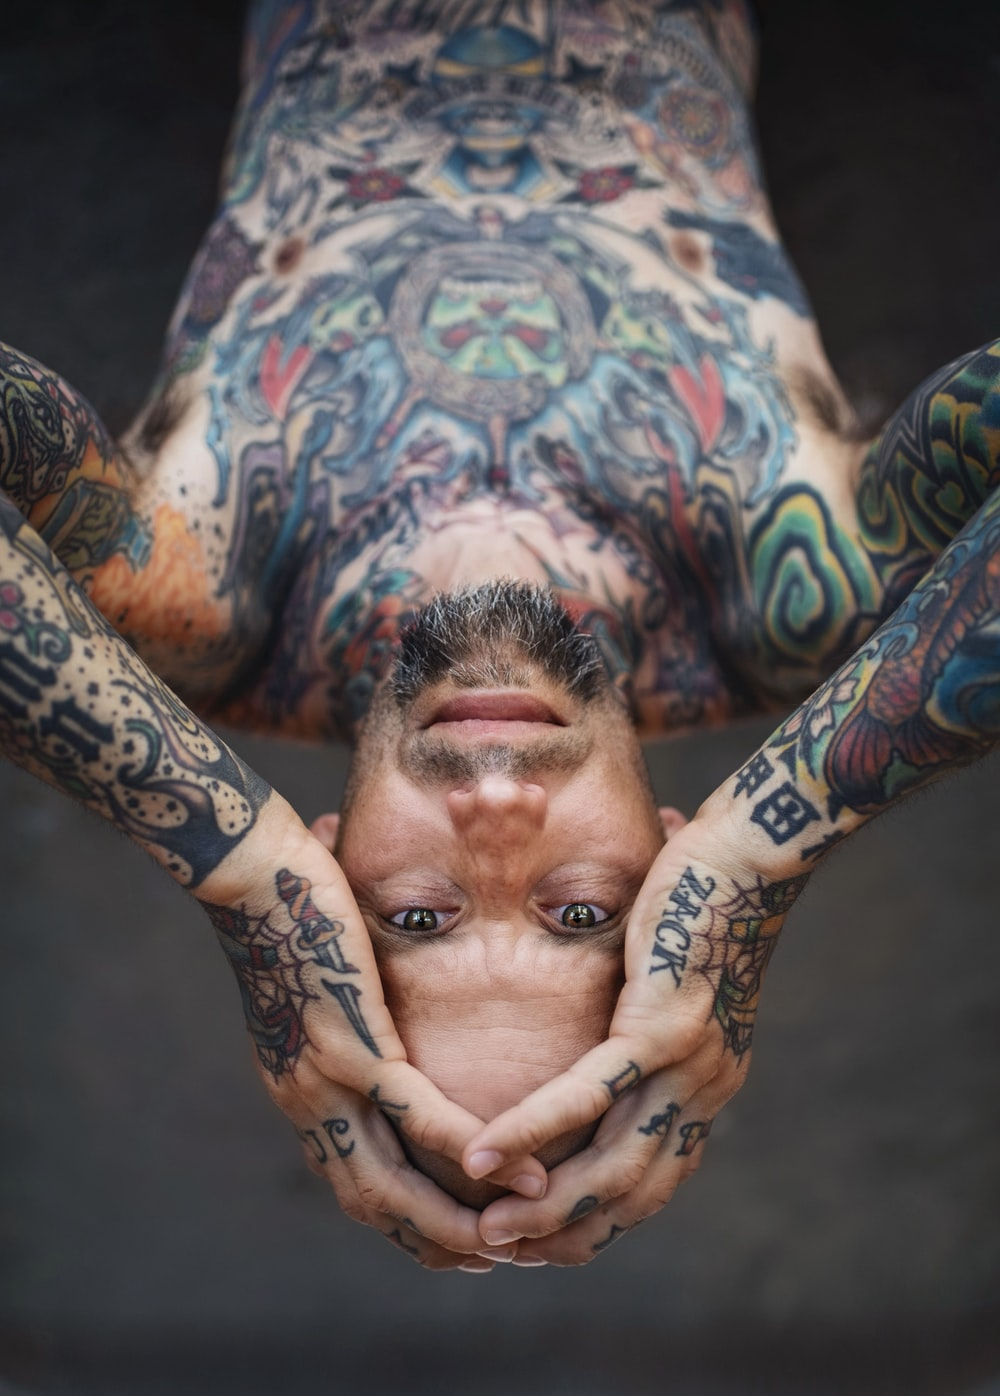 man with arms and body tattoos